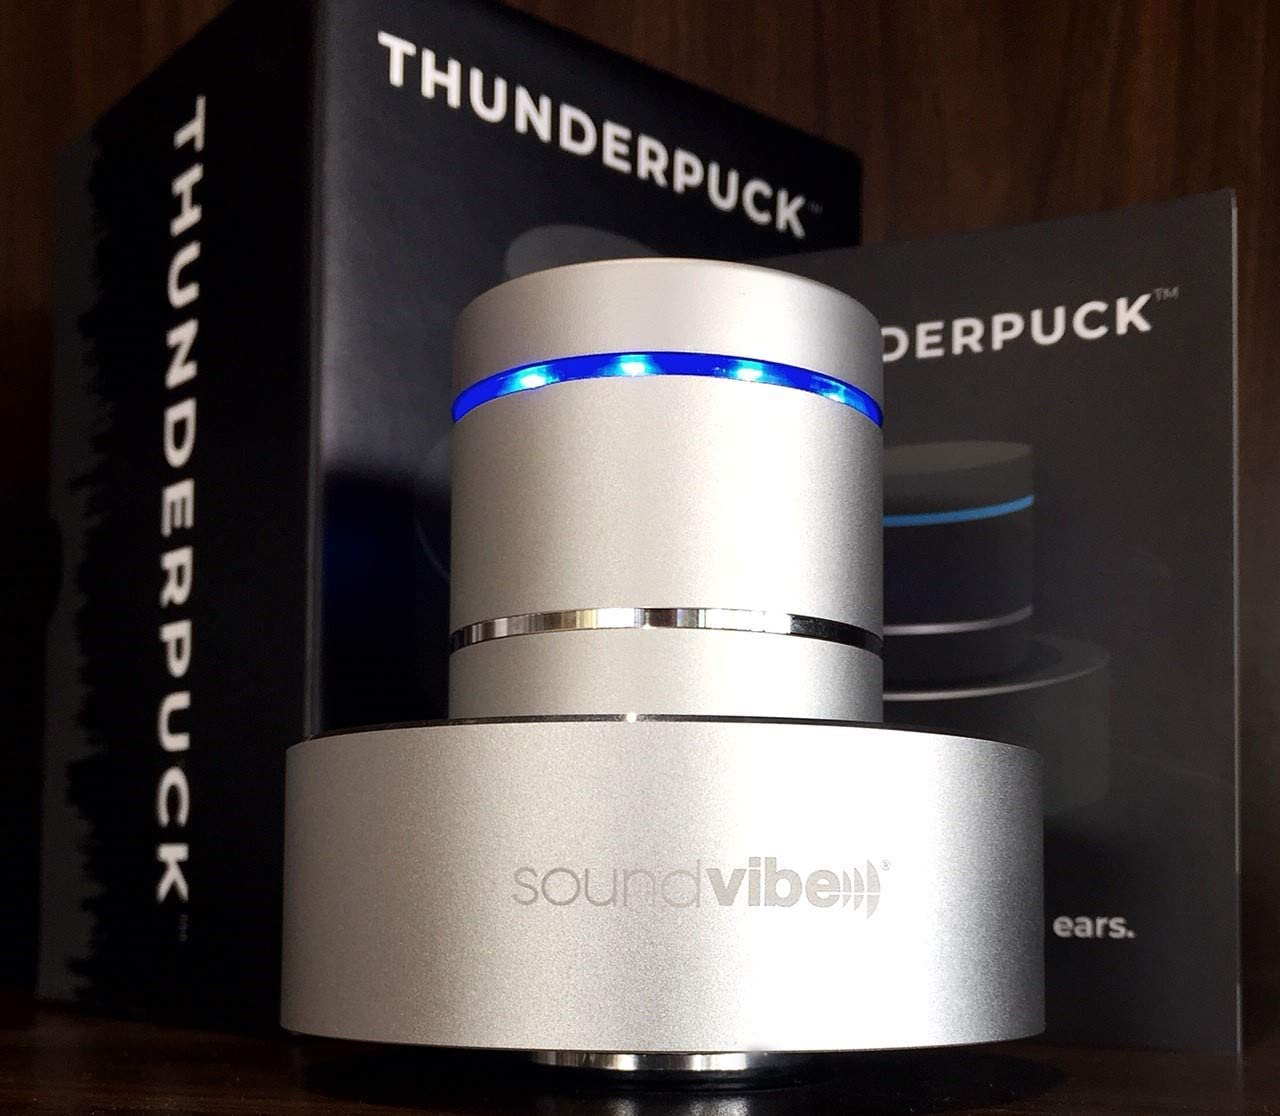 Thunderpuck Portable Bluetooth Mini 26W 360 Degree Sound with Subwoofer and Microphone for Hands-Free Calling Virtually Indestructible Rechargeable with 8 Hrs of Playback Line in//Line Out Feature